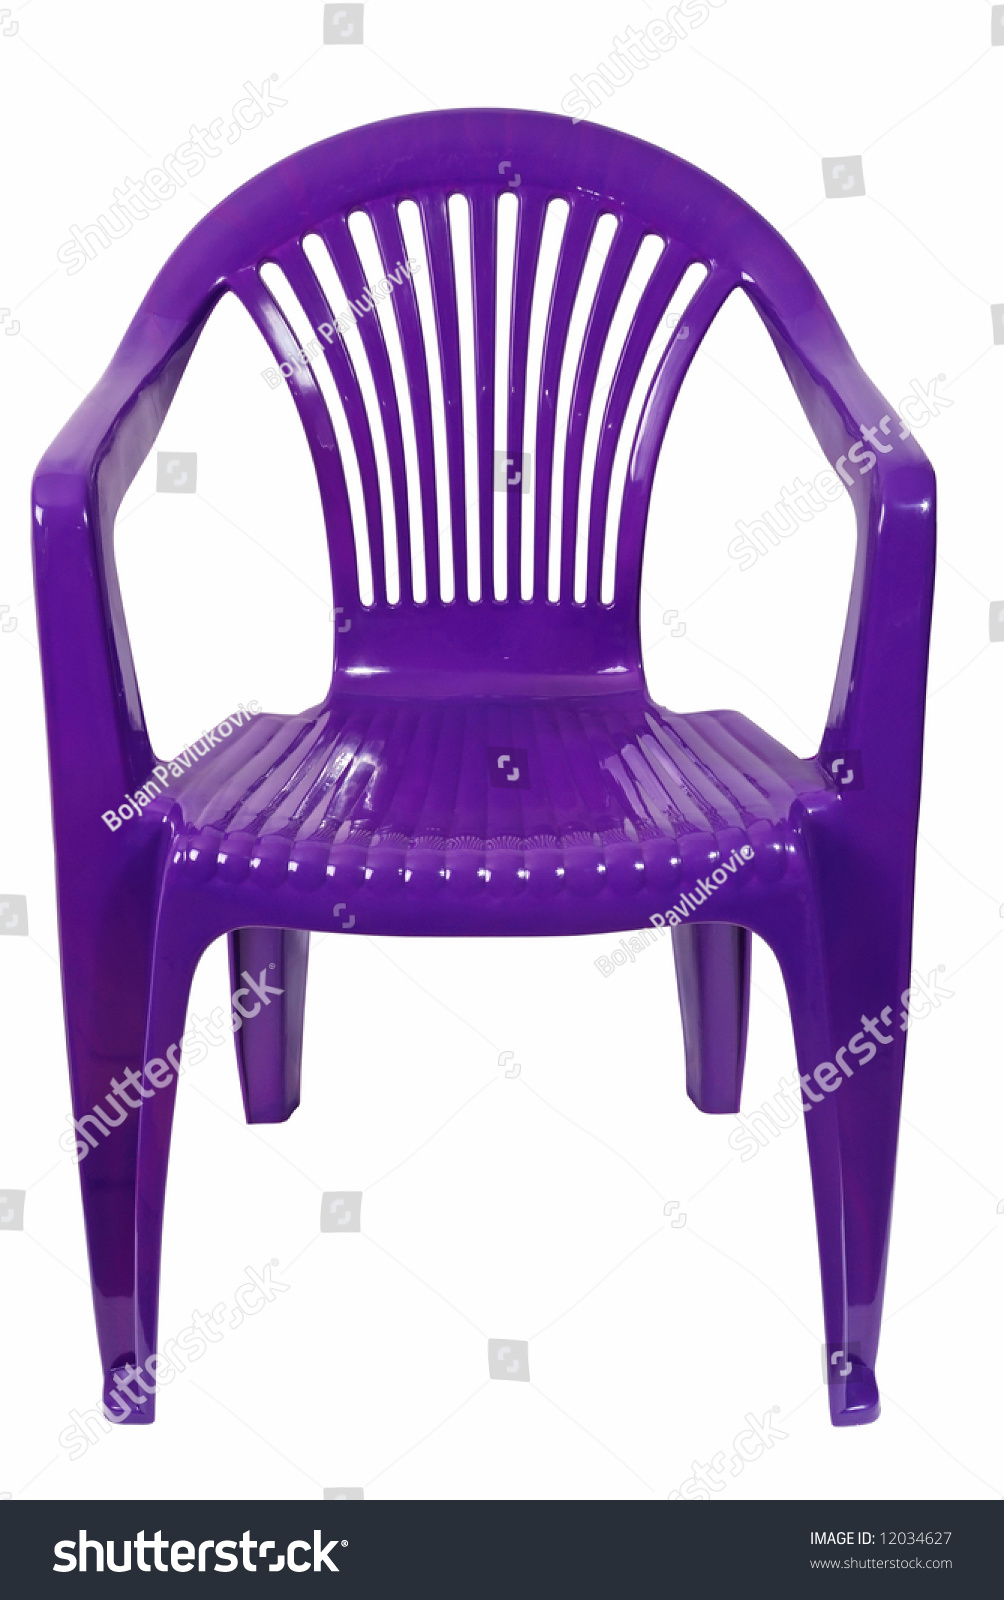 pink plastic chair clipping path - Plastic Chair